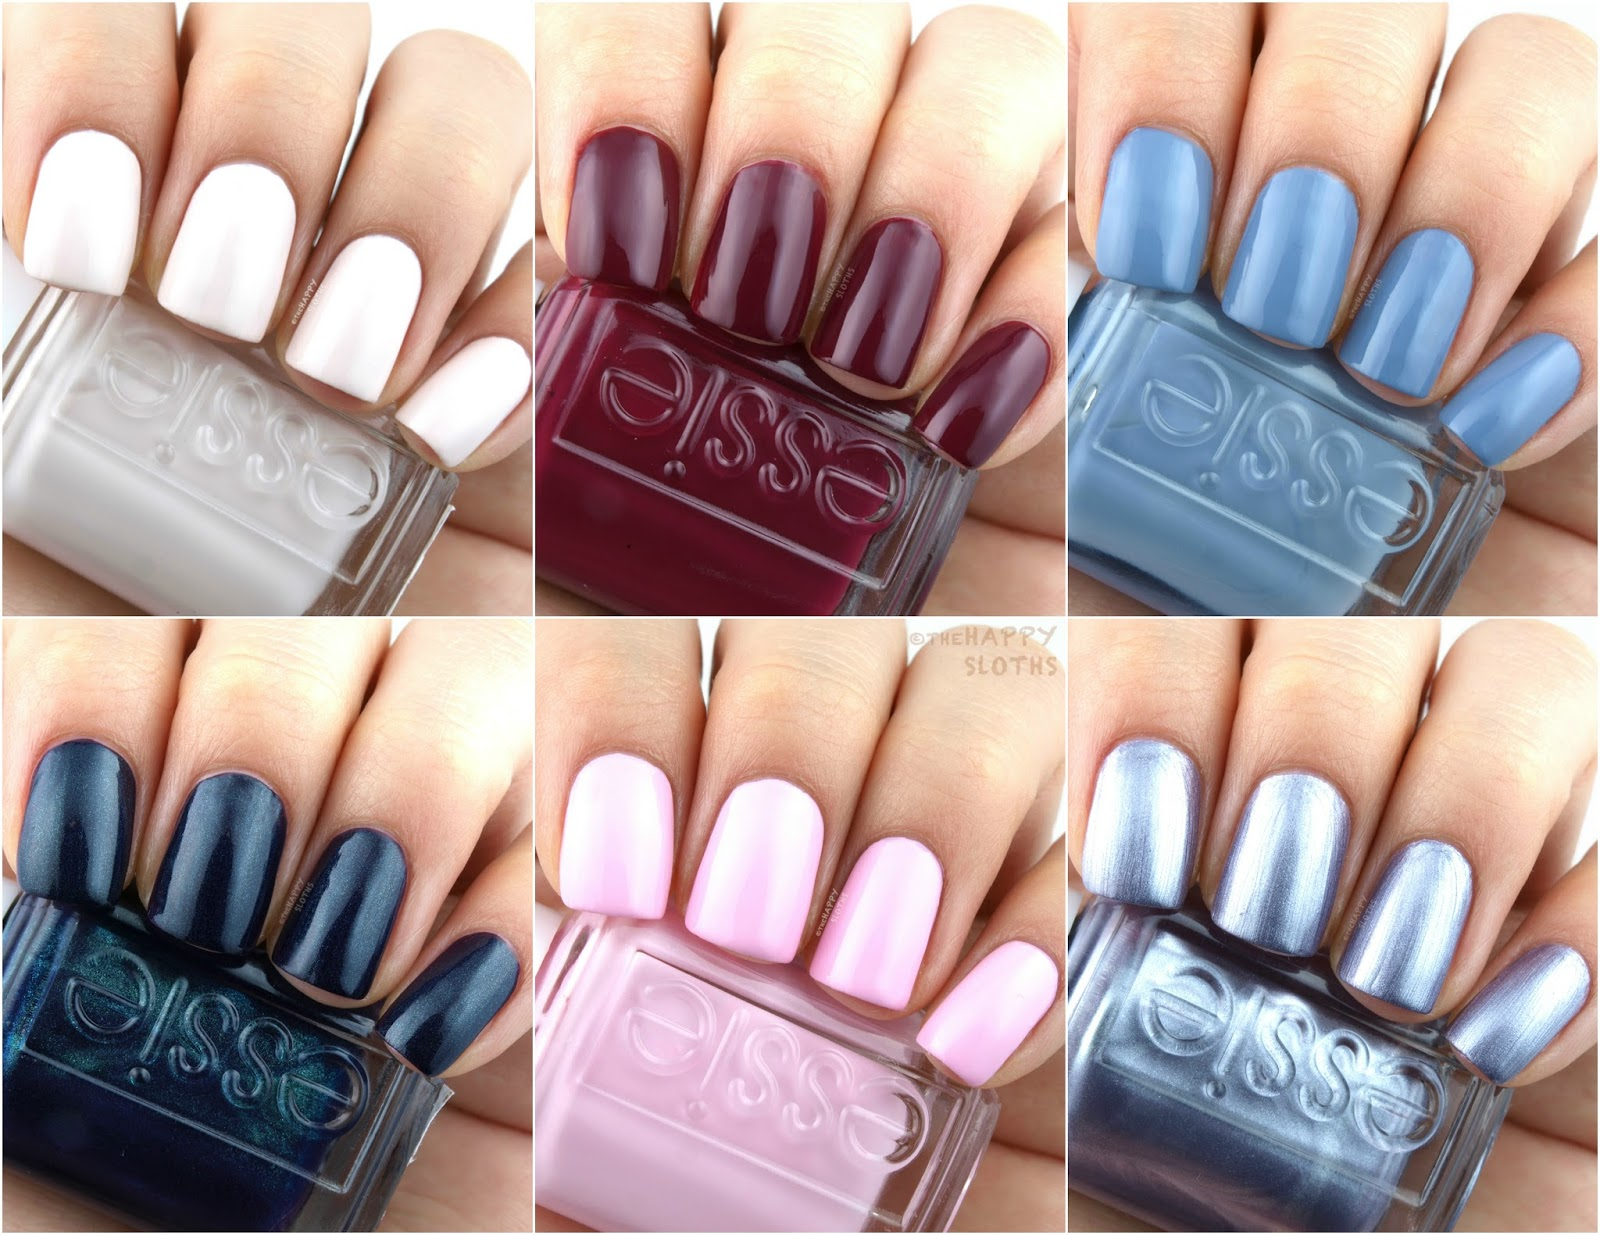 Essie Fall 2017 Collection: Review and Swatches